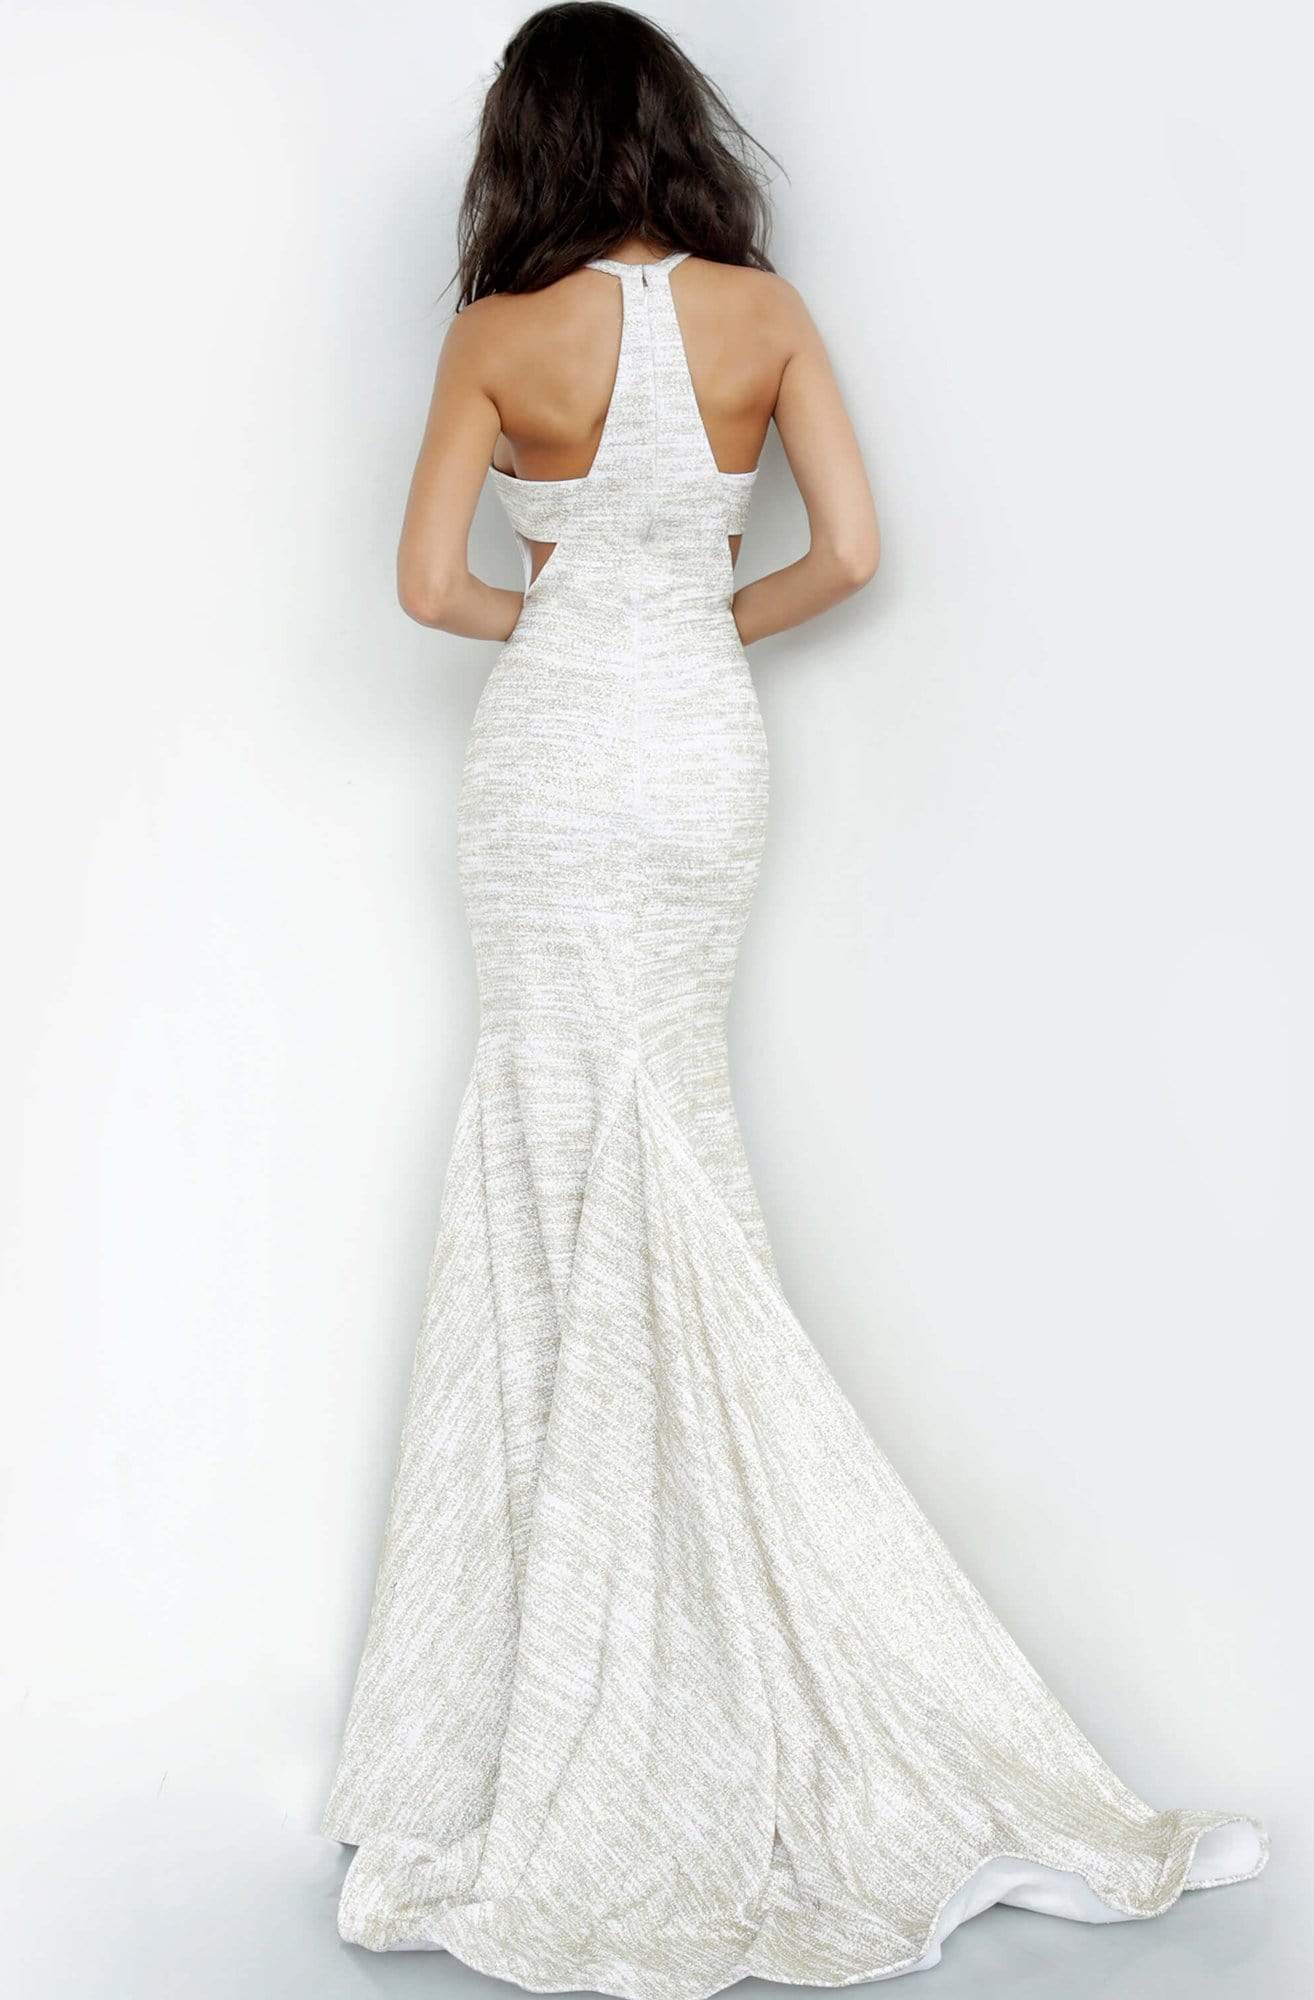 Jovani - 00688 Sleeveless Jewel Neck Stretch Glitter Mermaid Dress In White and Gold